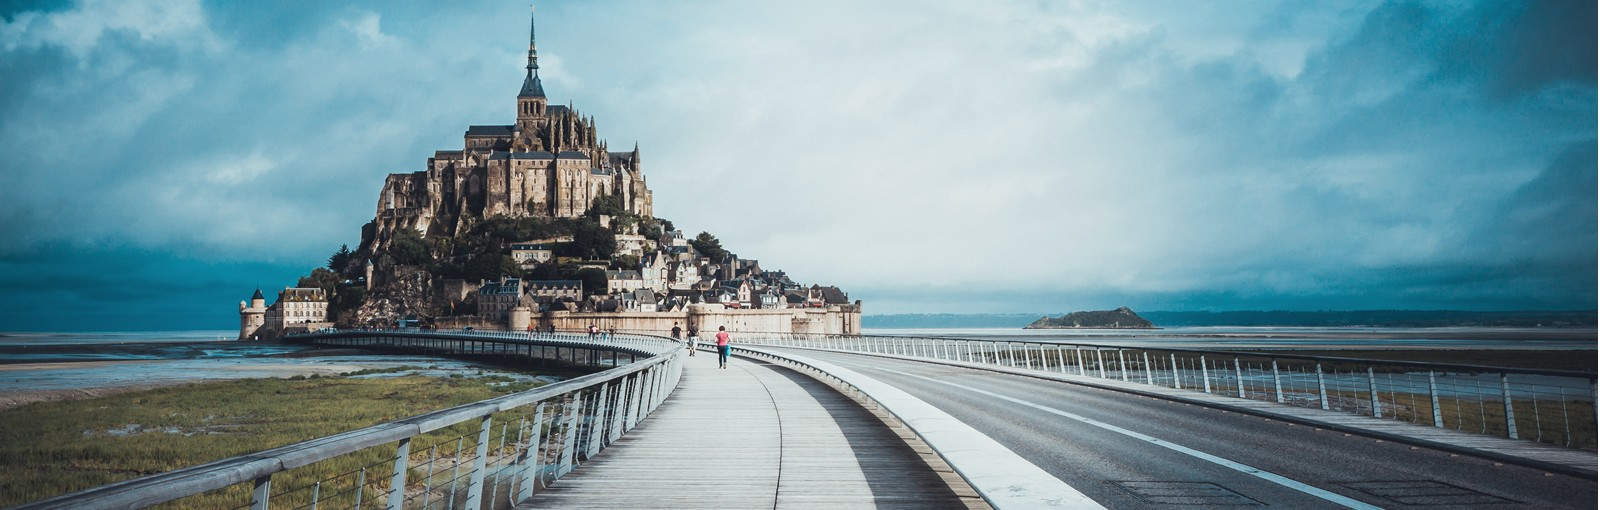 Tours Mont-Saint-Michel - Full days - Day tours from Paris